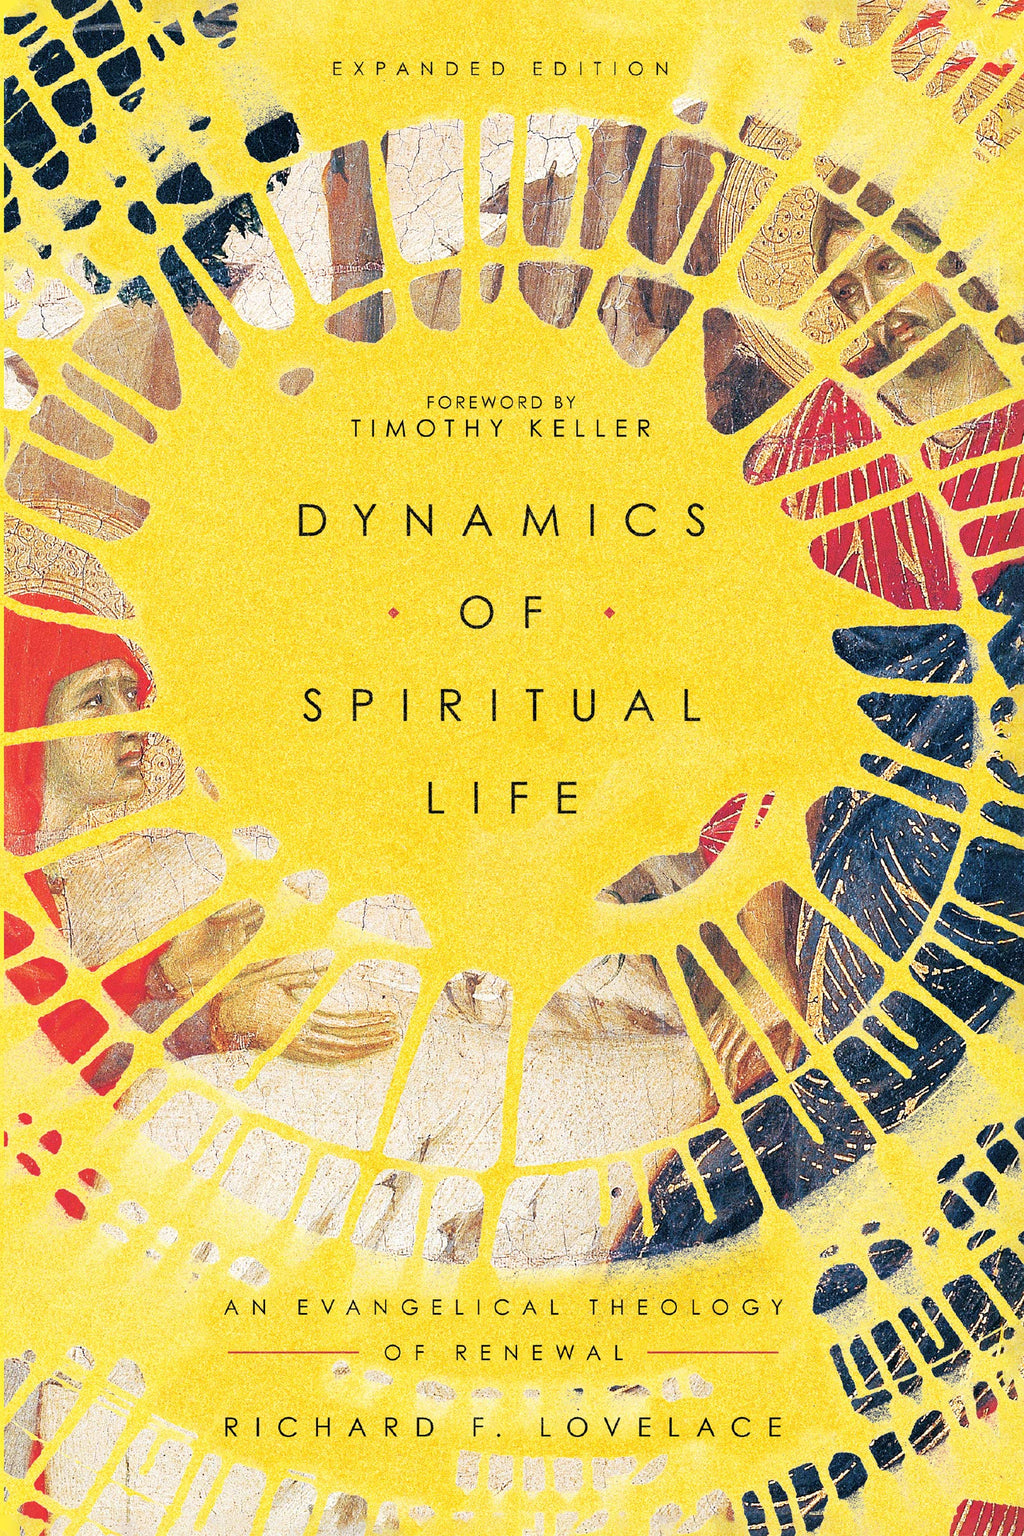 Dynamics of Spiritual Life: An Evangelical Theology of Renewal (Expanded) - Lovelace, Richard F; Keller, Timothy (foreword by) - 9780830852888